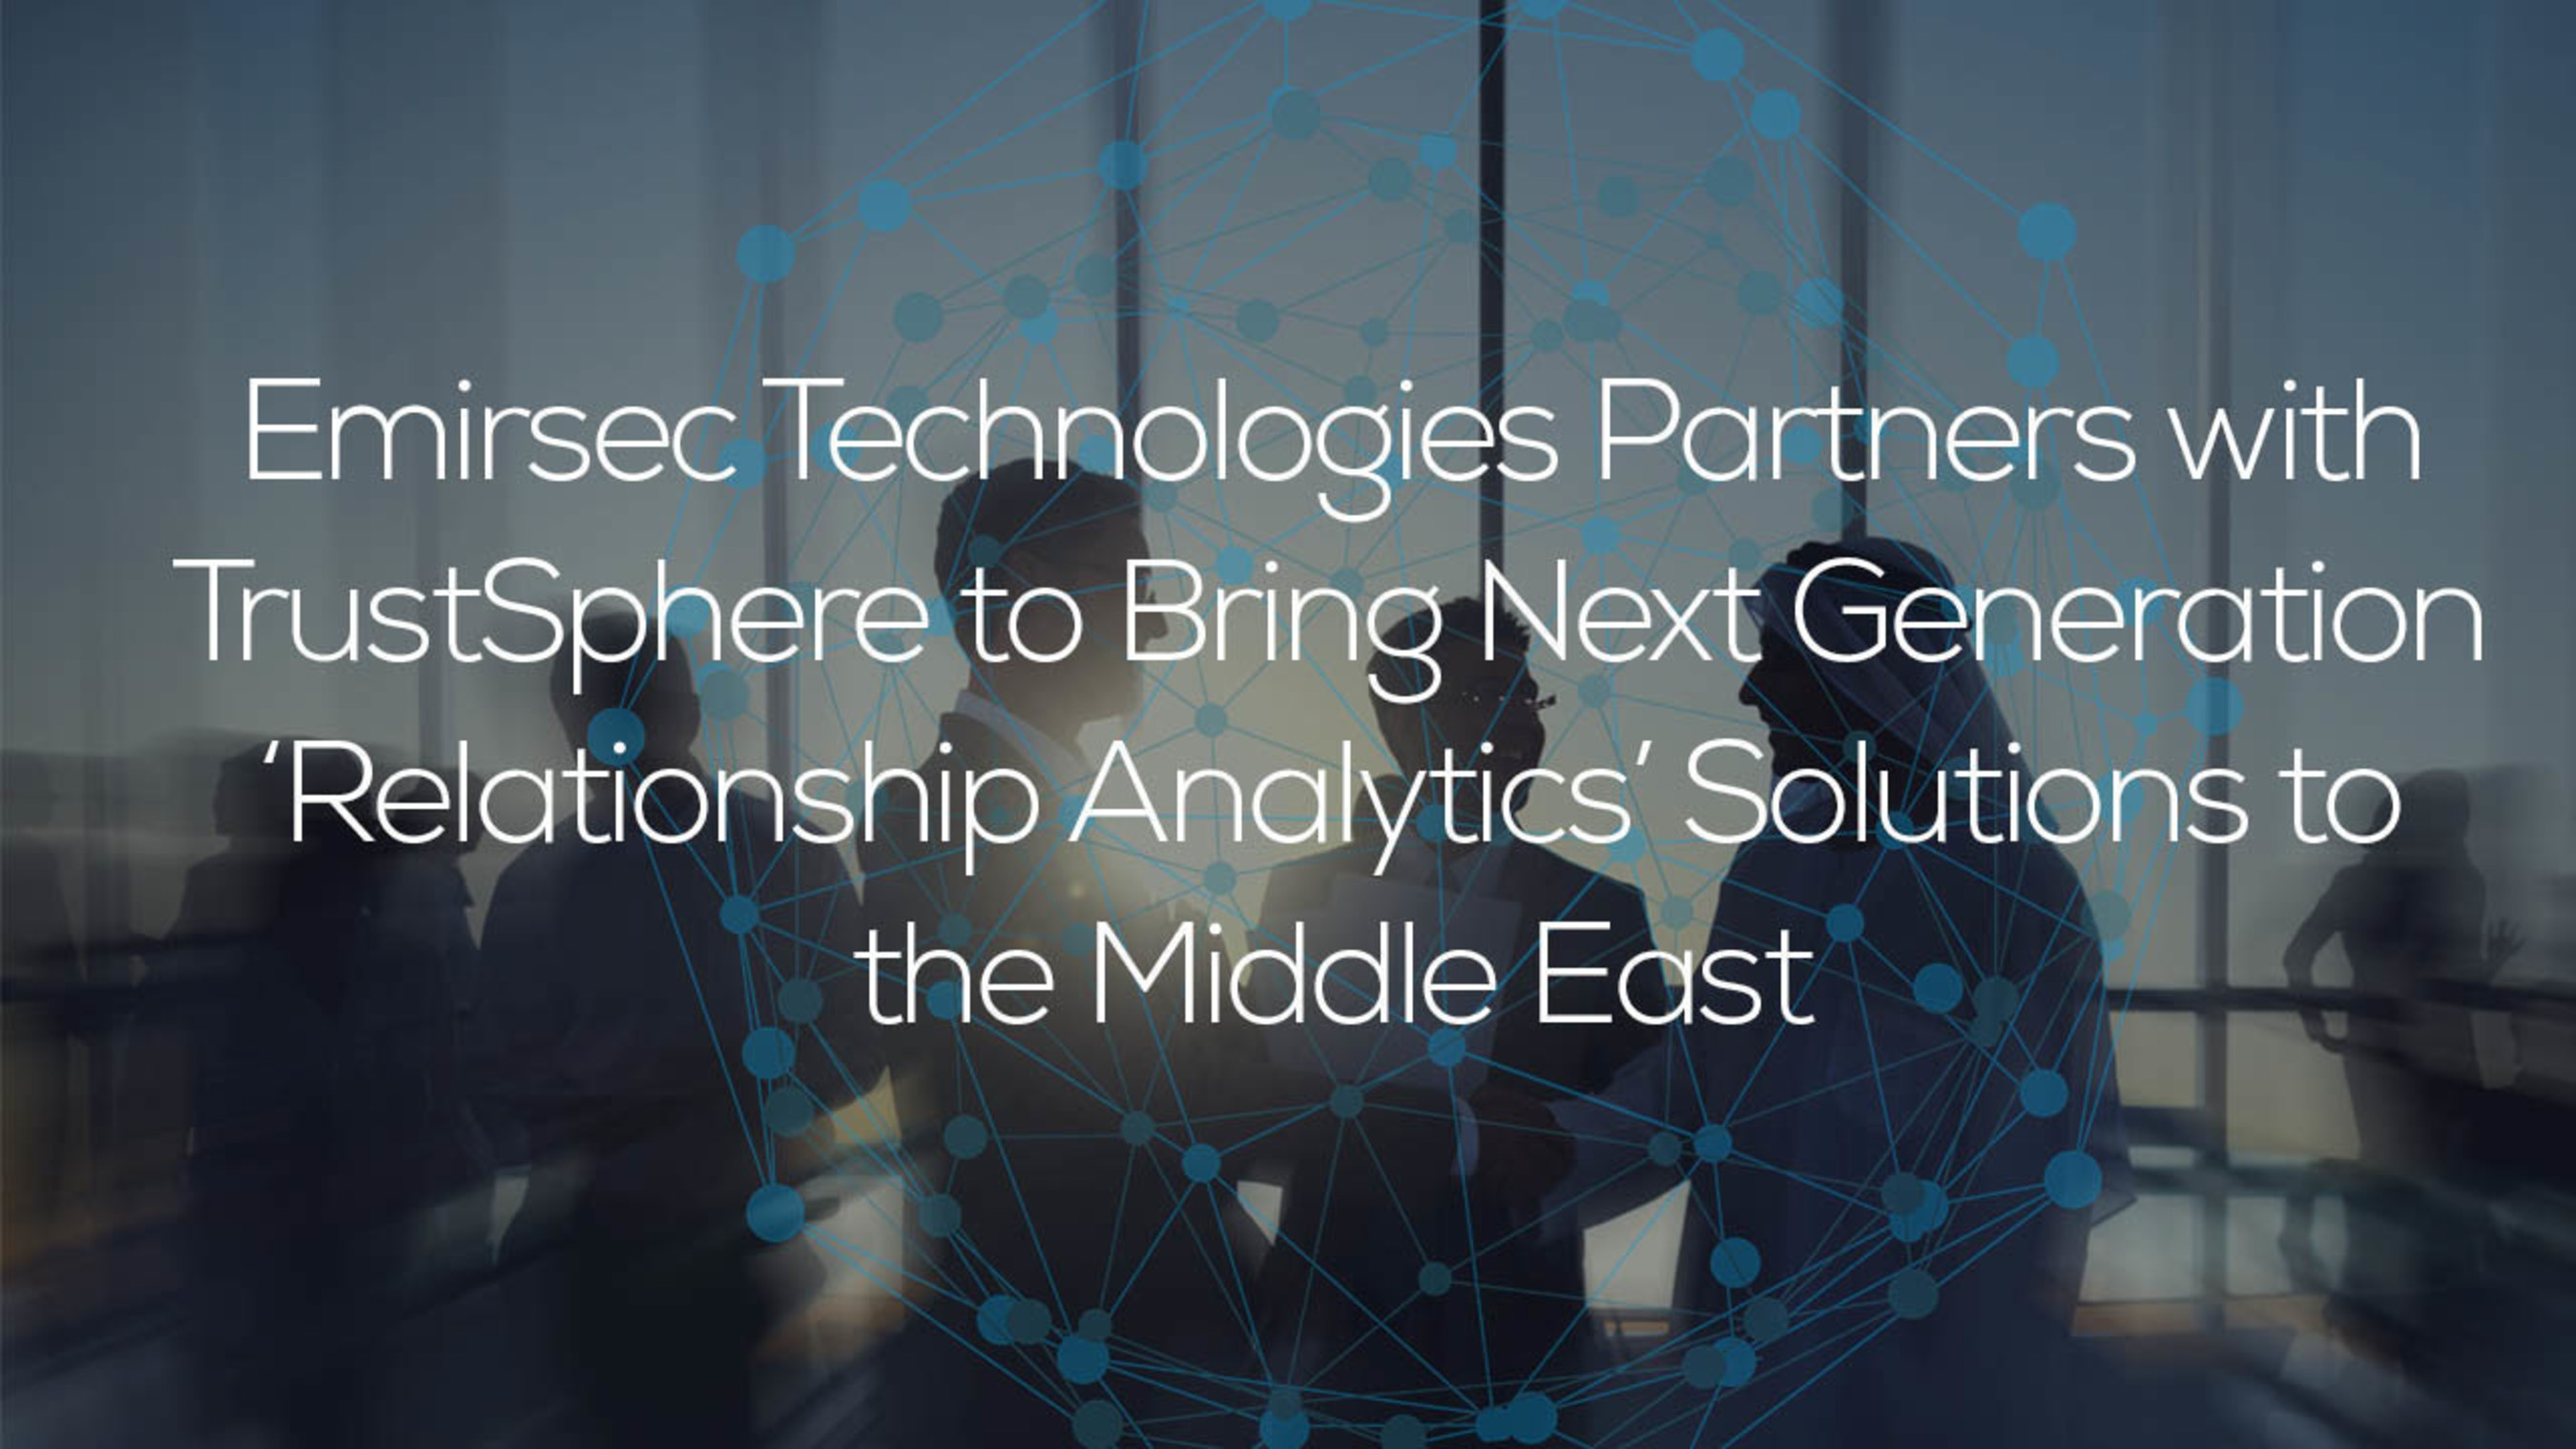 Emirsec Technologies Partners with TrustSphere to Bring Next Generation 'Relationship Analytics'